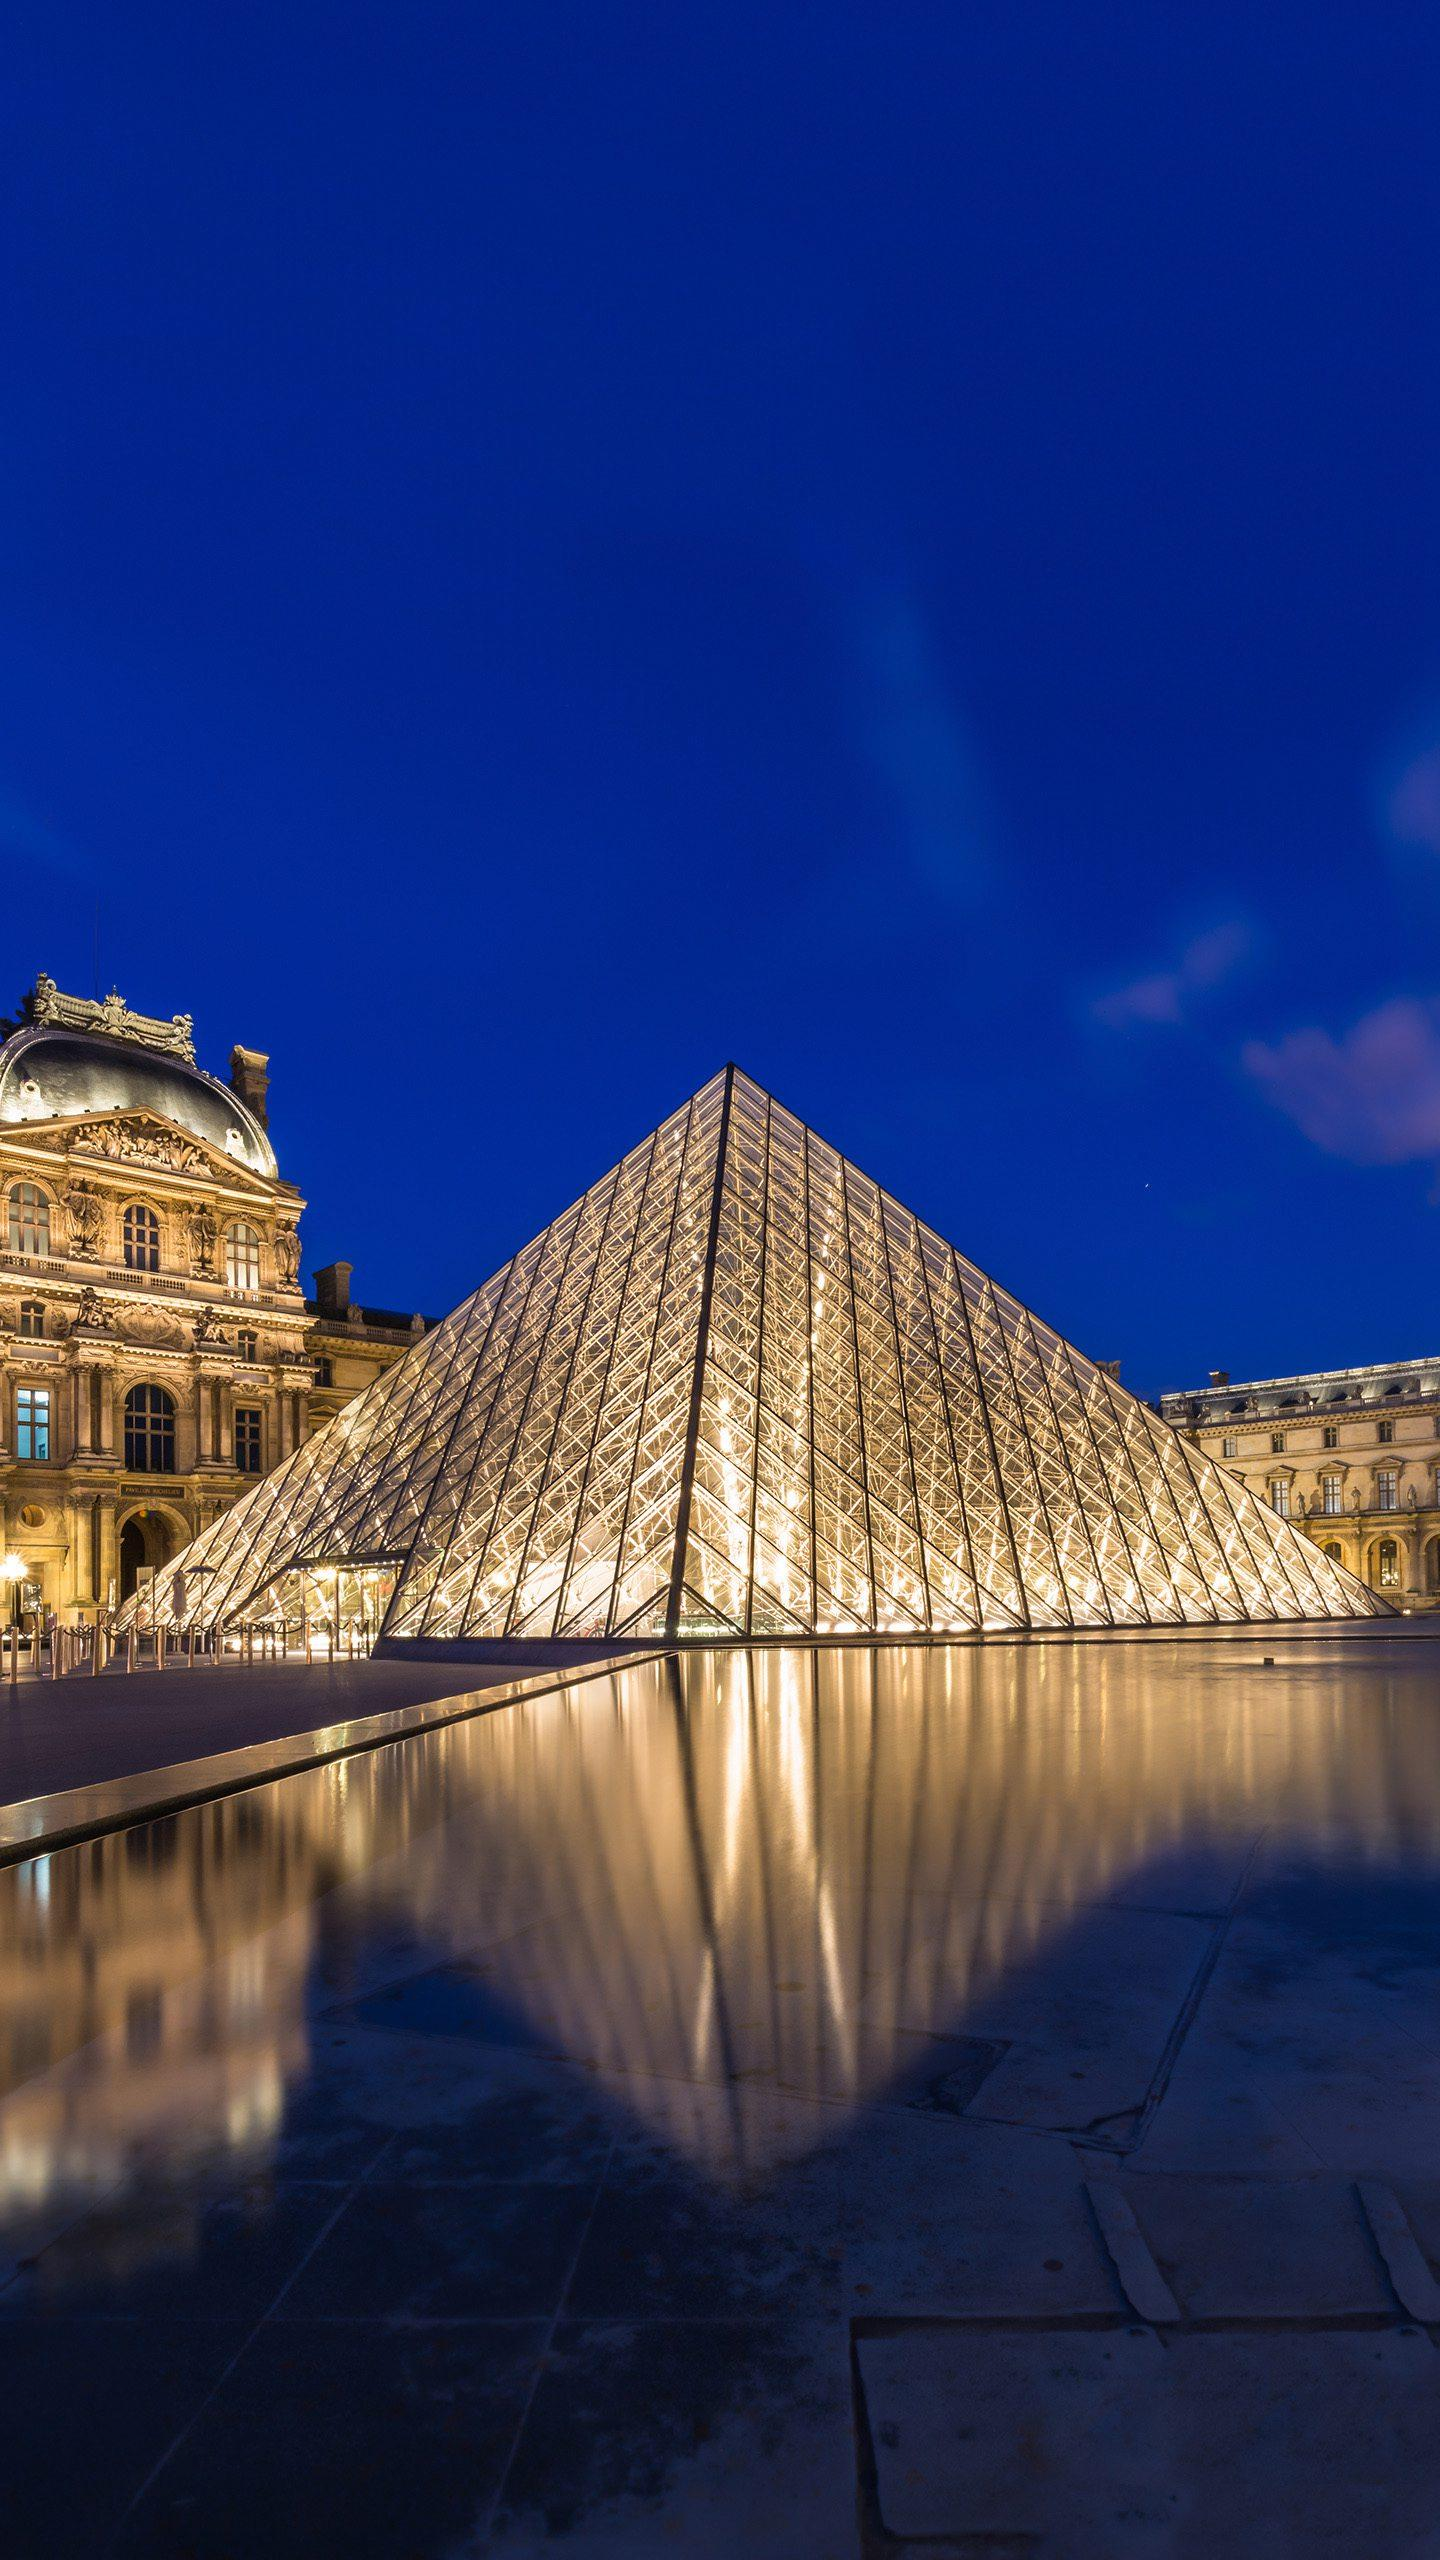 Paris - Louvre. The glass pyramid designed by Pei Ming has become a symbol of the Louvre, adding a new dazzling brilliance to the city of Paris.